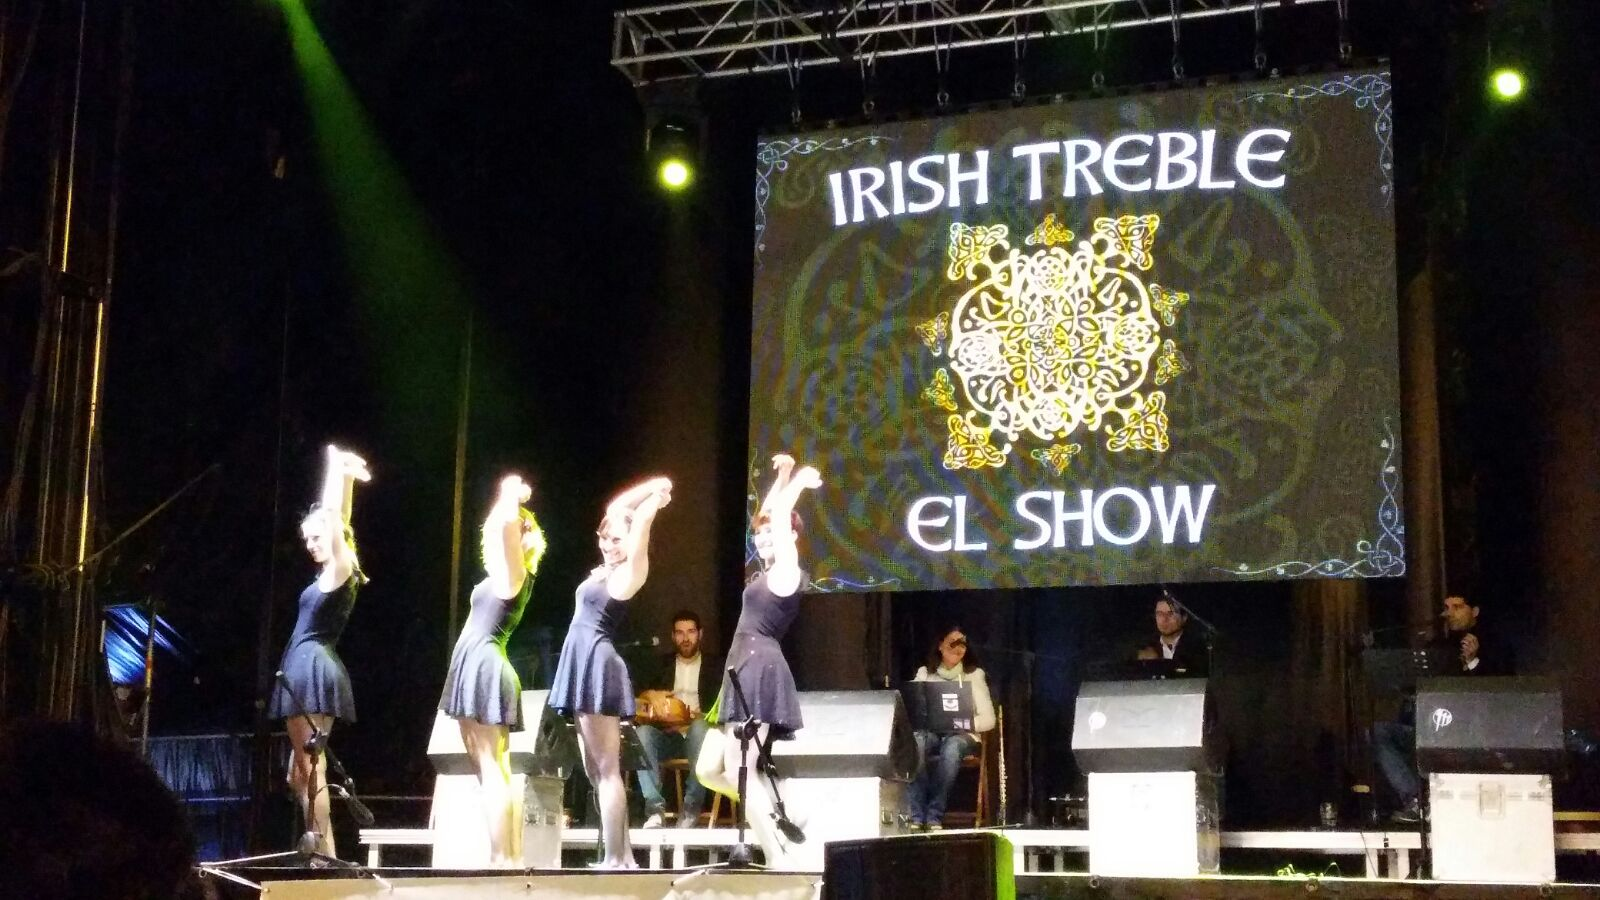 Irish Treble - Capella flamenca